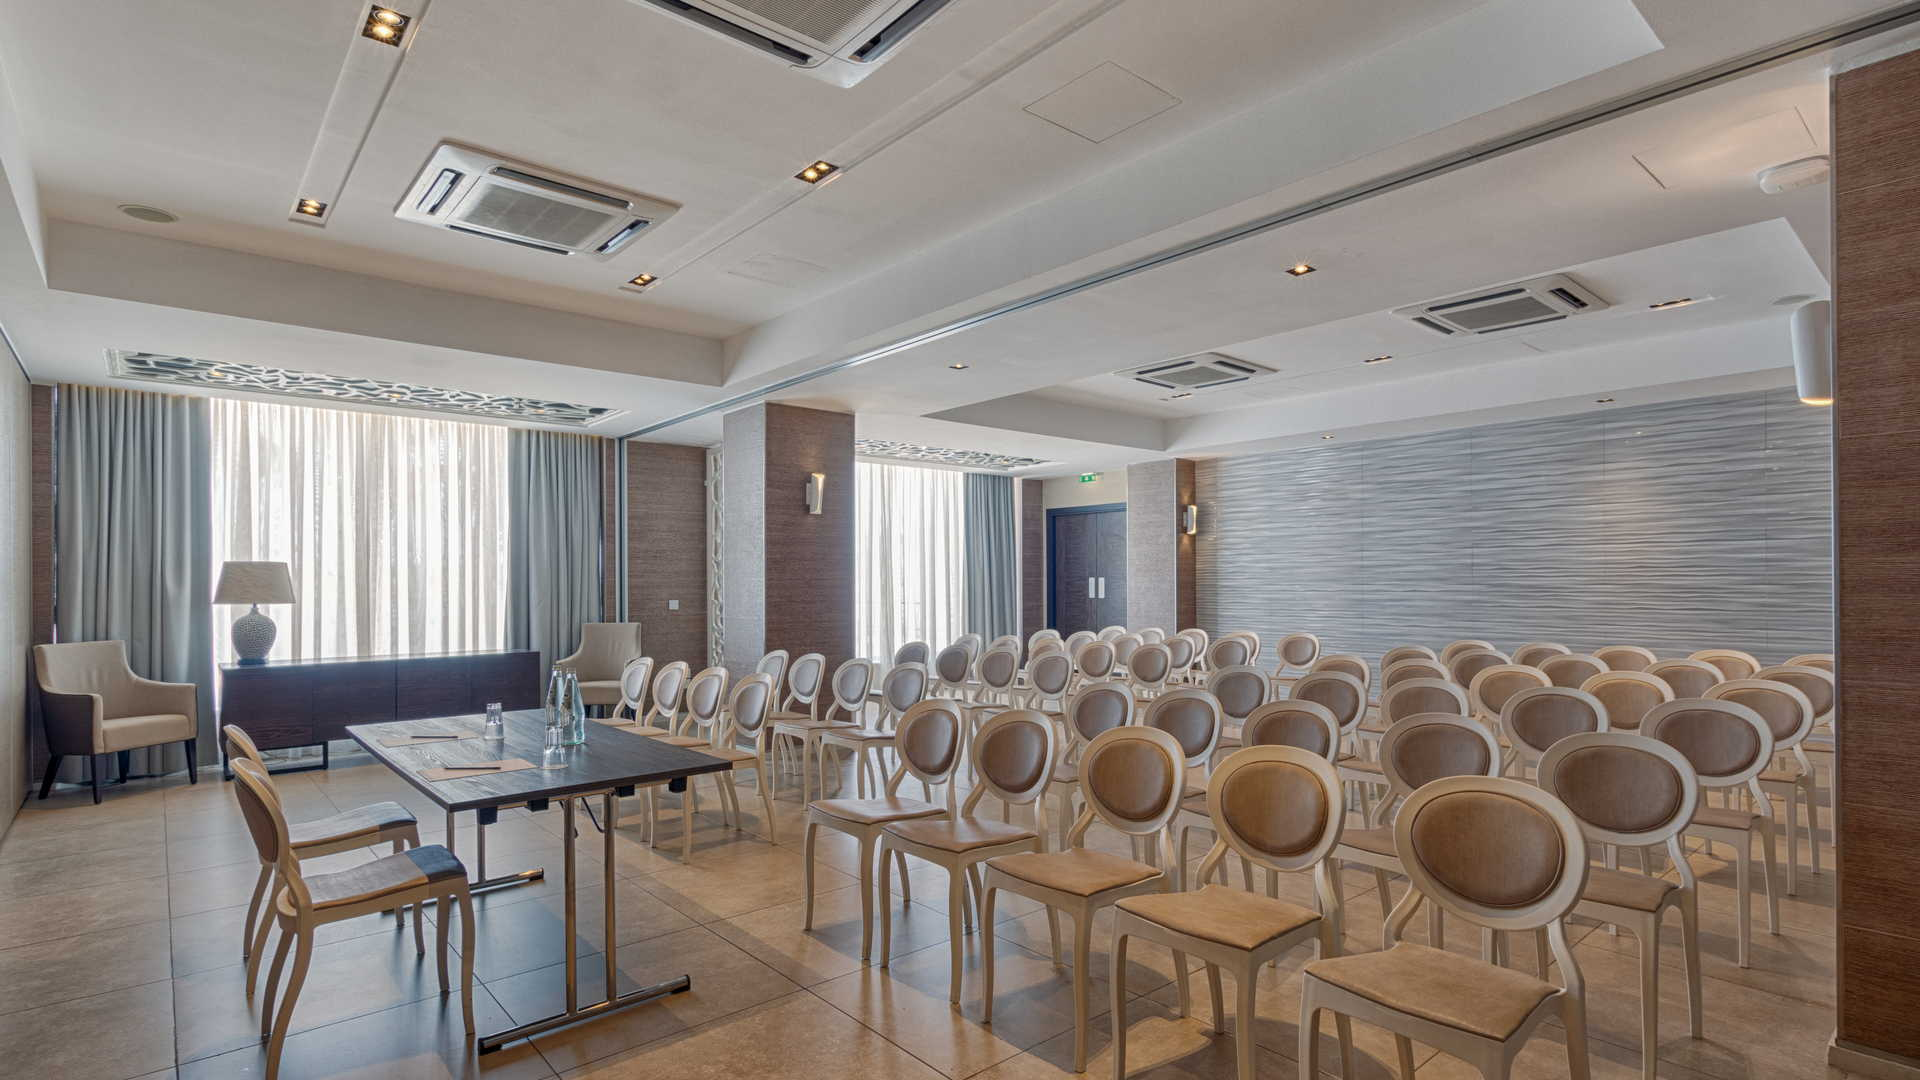 Luzzu Meeting Room Theatre